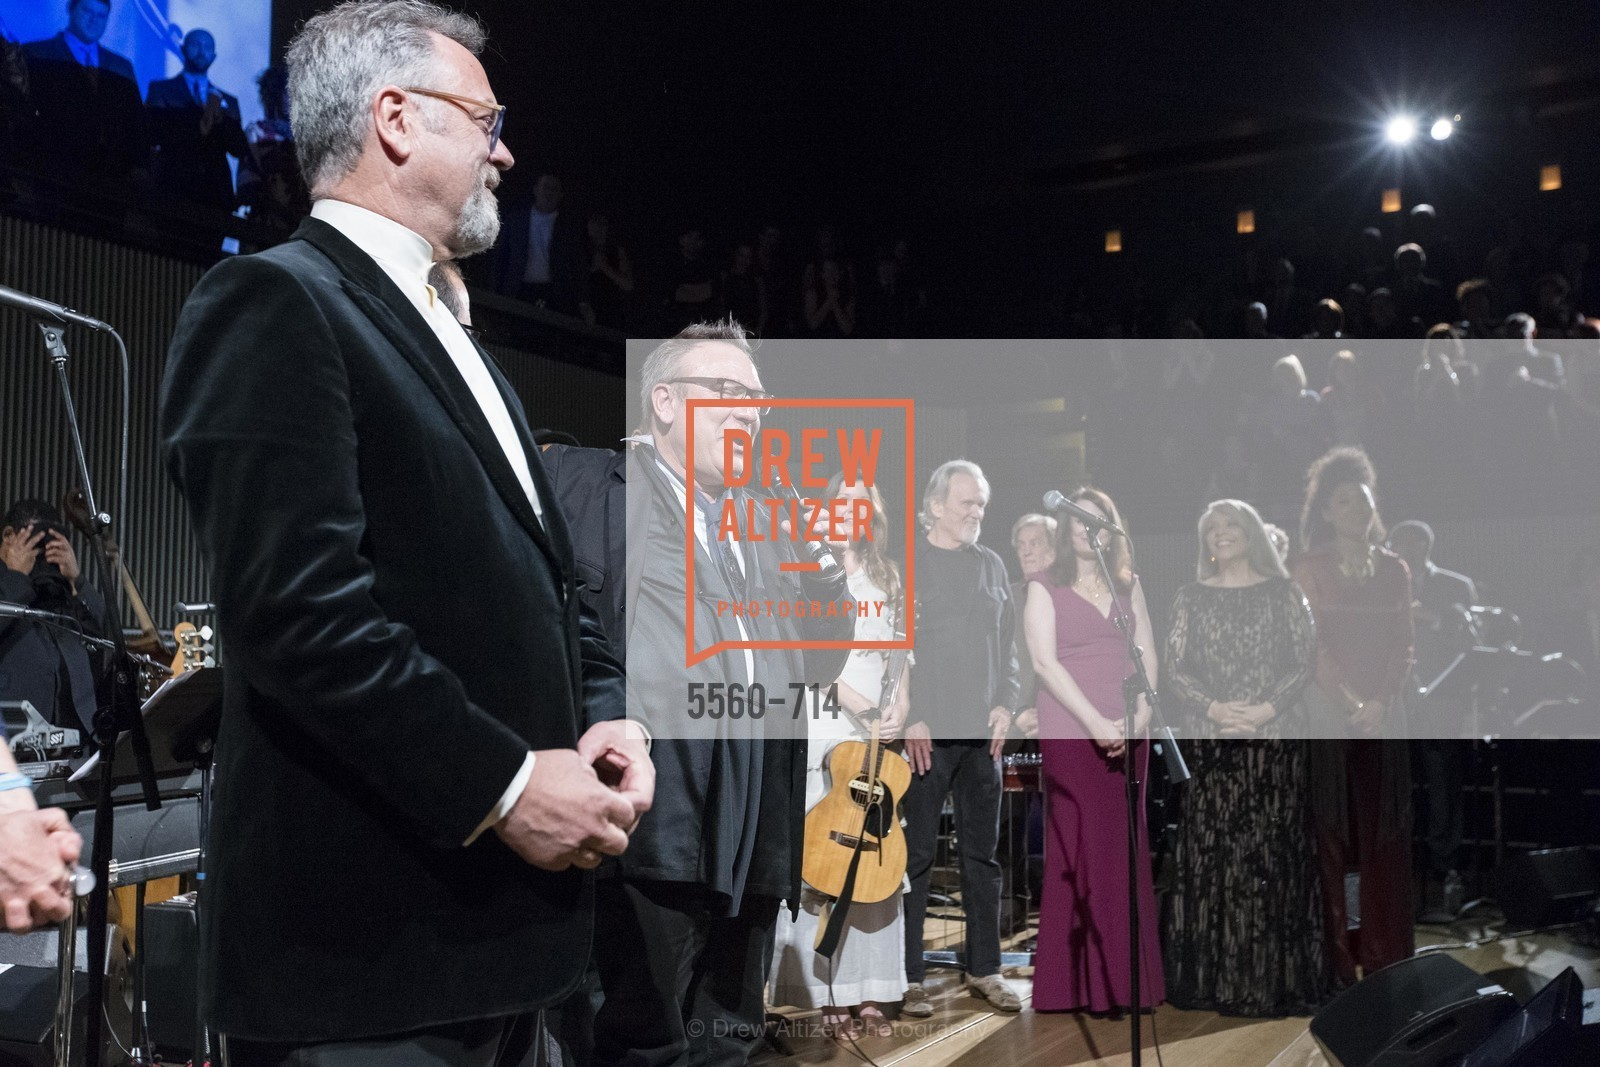 Nion McEvoy, Stanlee Gatti, SFJAZZ Gala 2015 Honors Joni Mitchell with Lifetime Achievement Award, US, May 8th, 2015,Drew Altizer, Drew Altizer Photography, full-service agency, private events, San Francisco photographer, photographer california